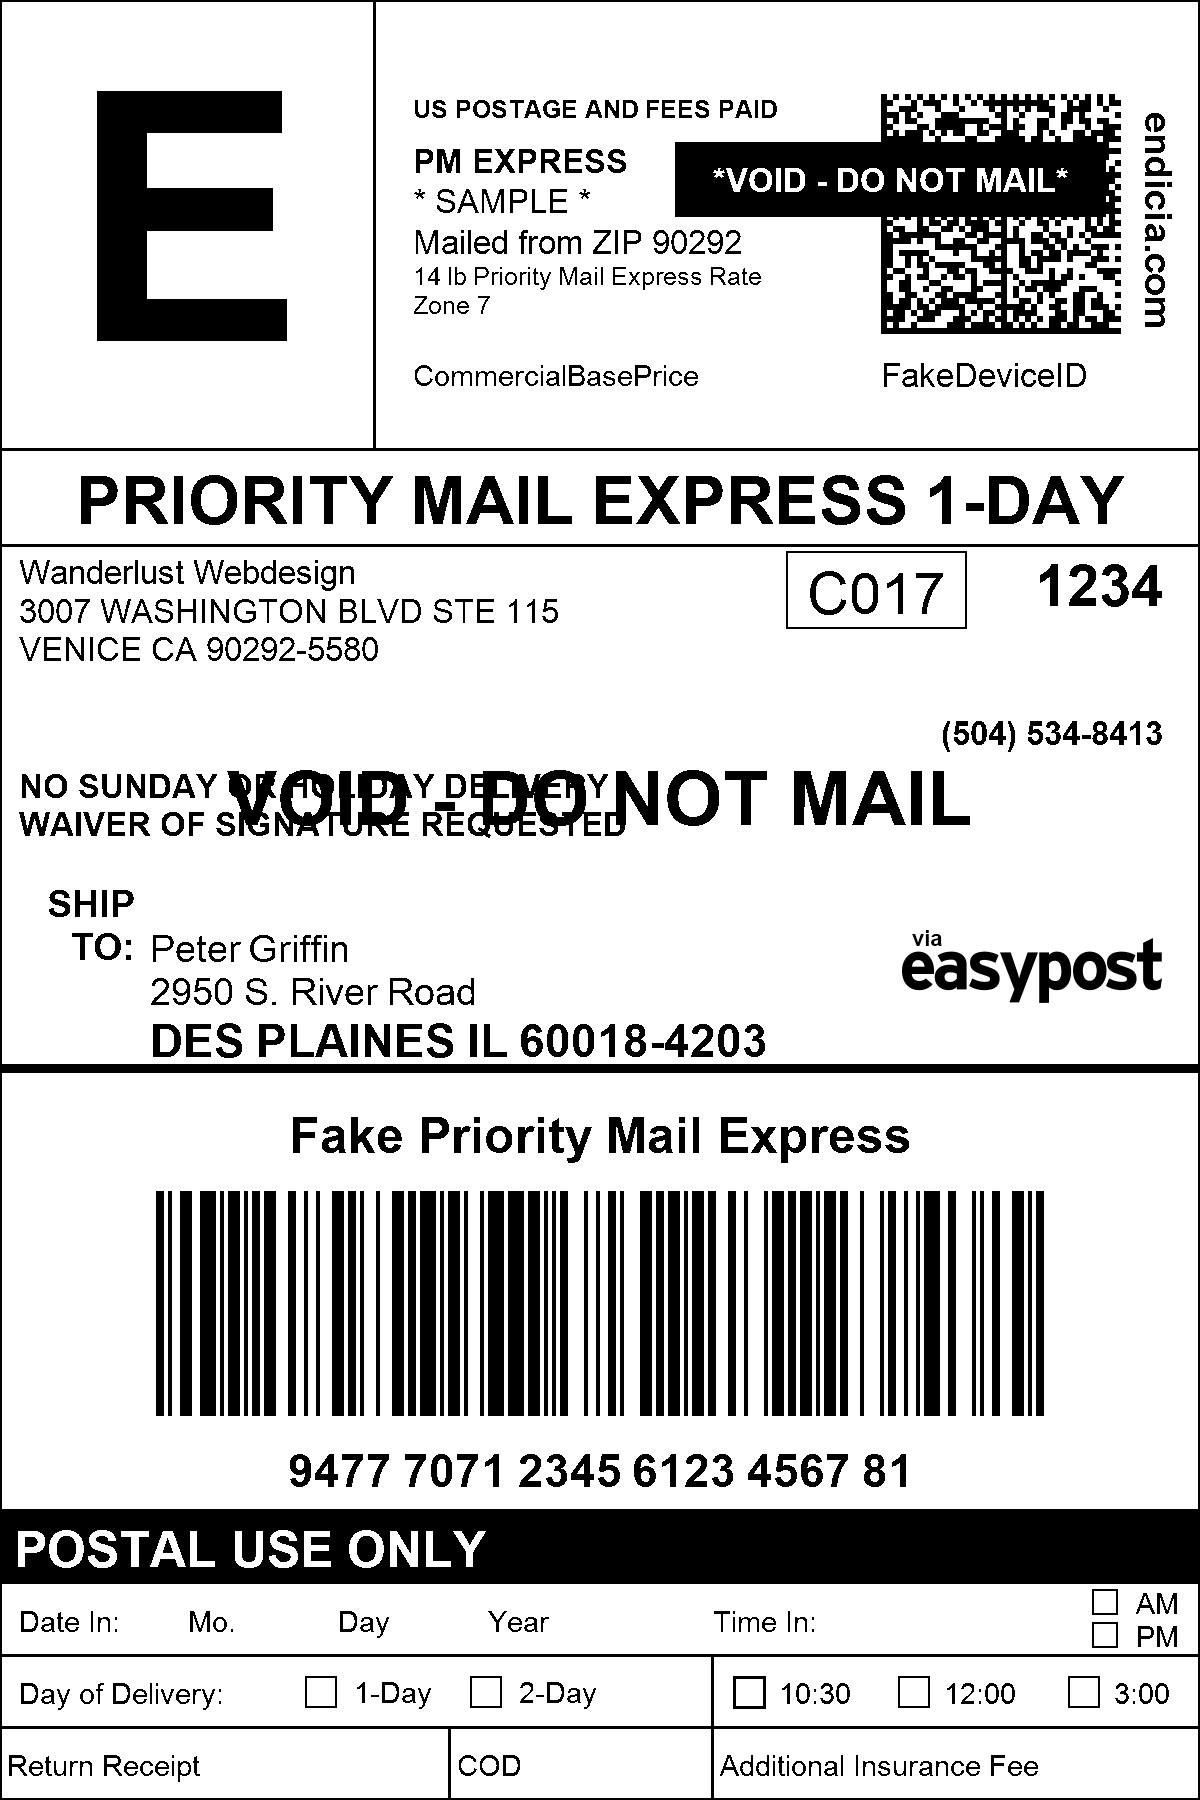 USPS FedEx UPS DHL Shipping Labels WooCommerce - Package mailing label template